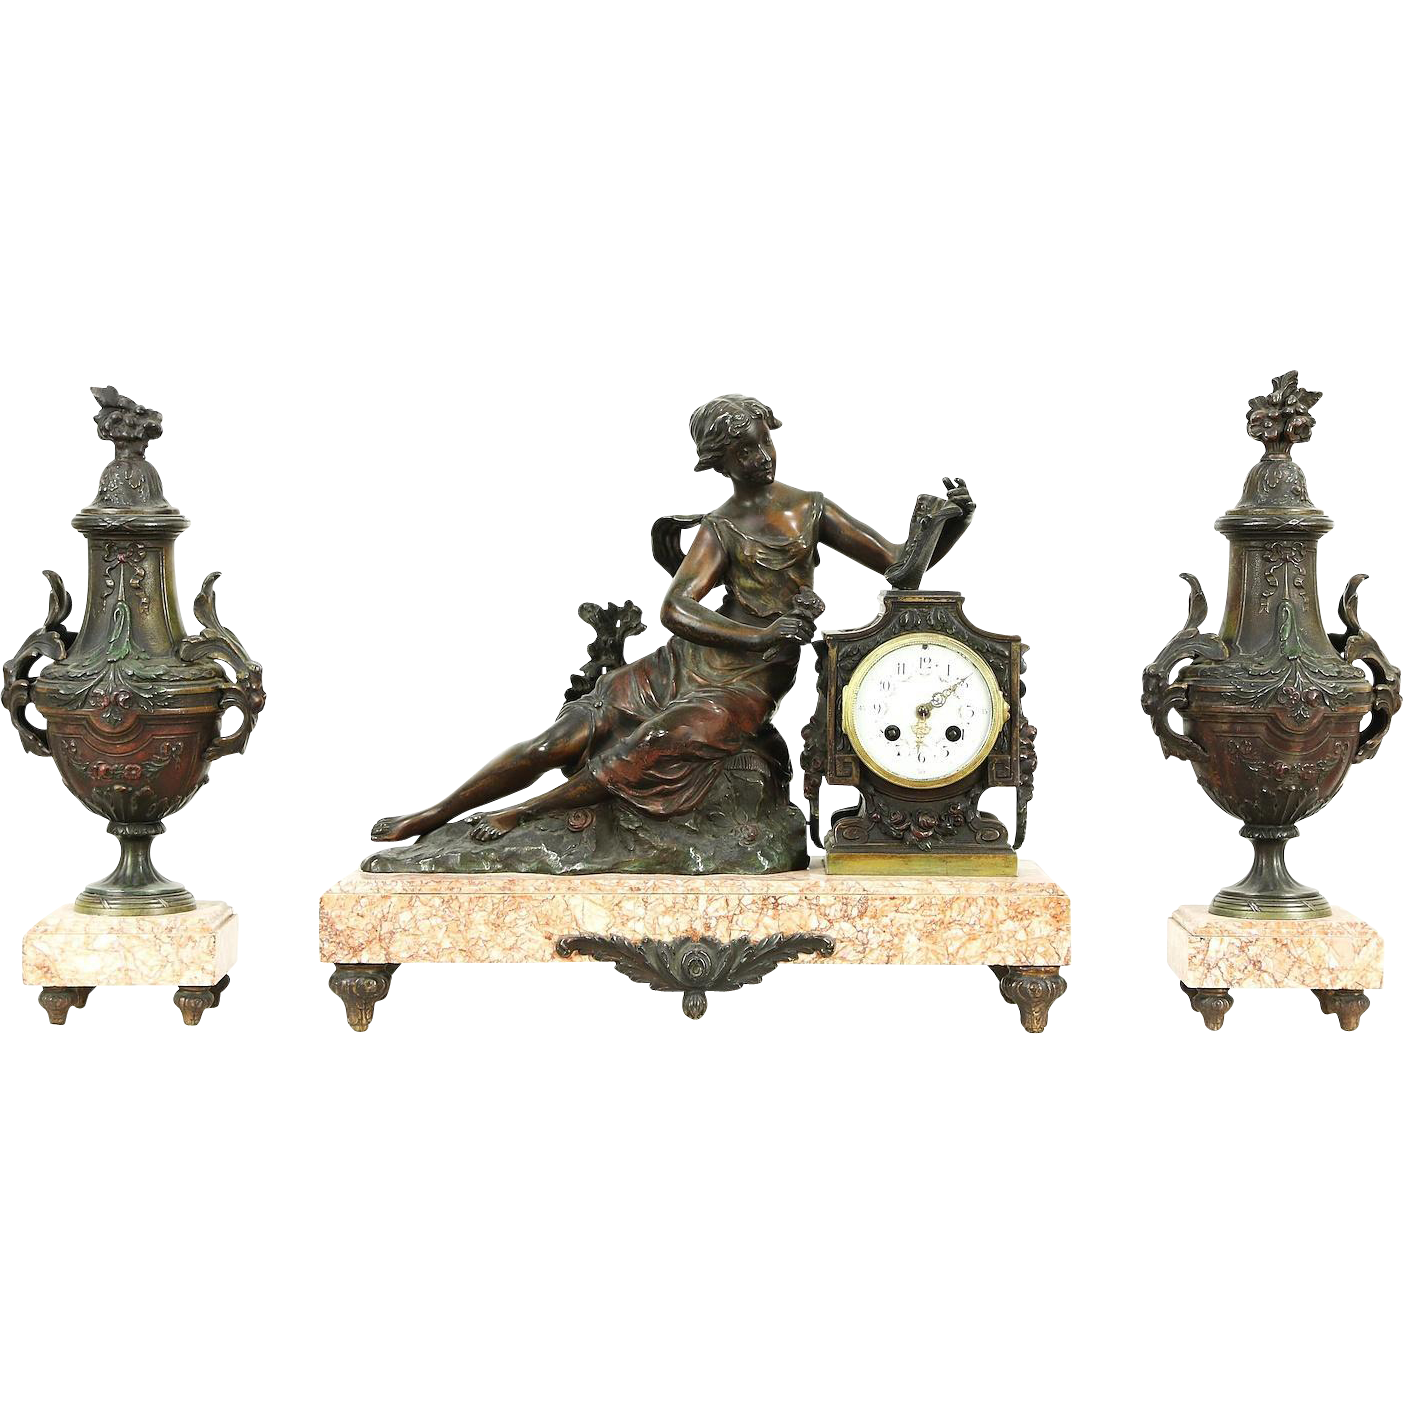 French Antique 1890's Mantel Clock Set, Sculpture Signed Ruffany